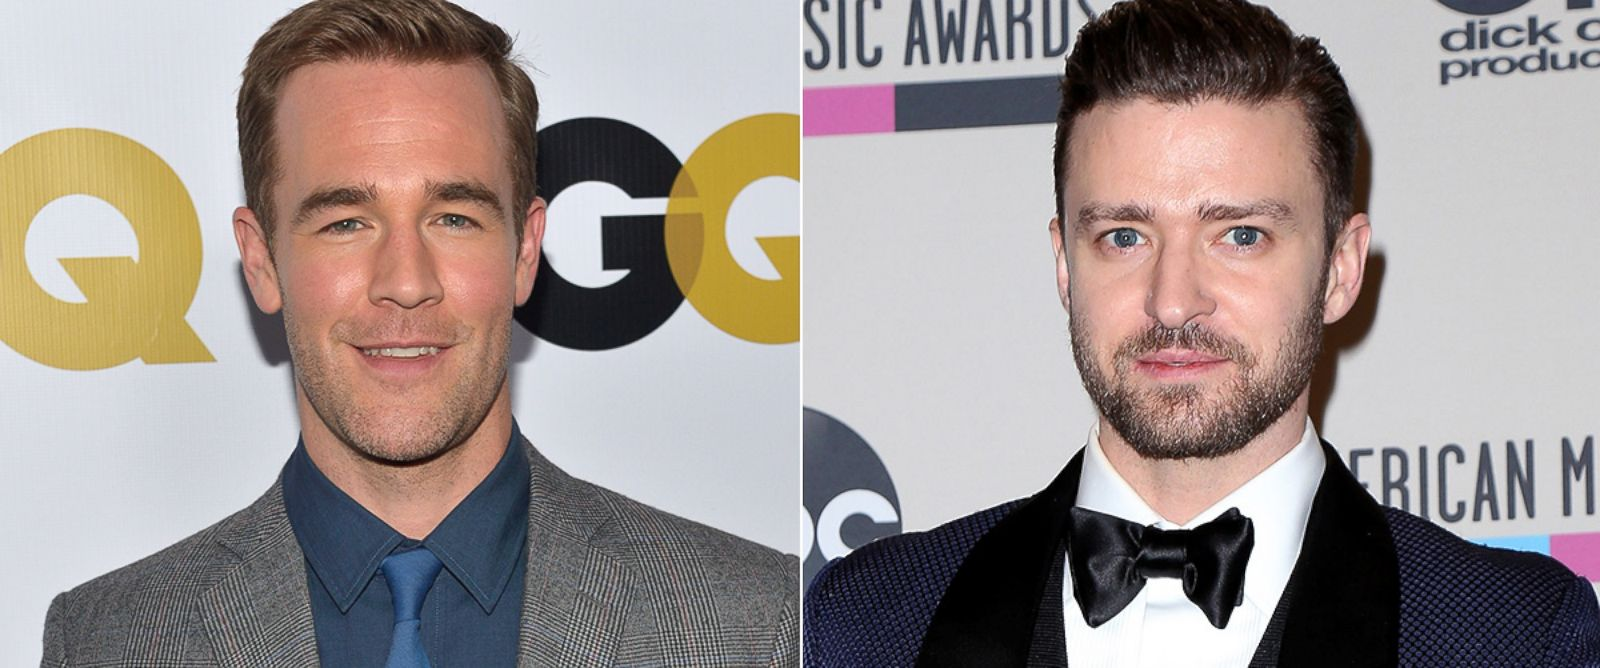 PHOTO: James Van Der Beek, left, is pictured on Nov. 12, 2013 in Los Angeles. Justin Timberlake, right, is pictured on Nov. 24, 2013 in Los Angeles.